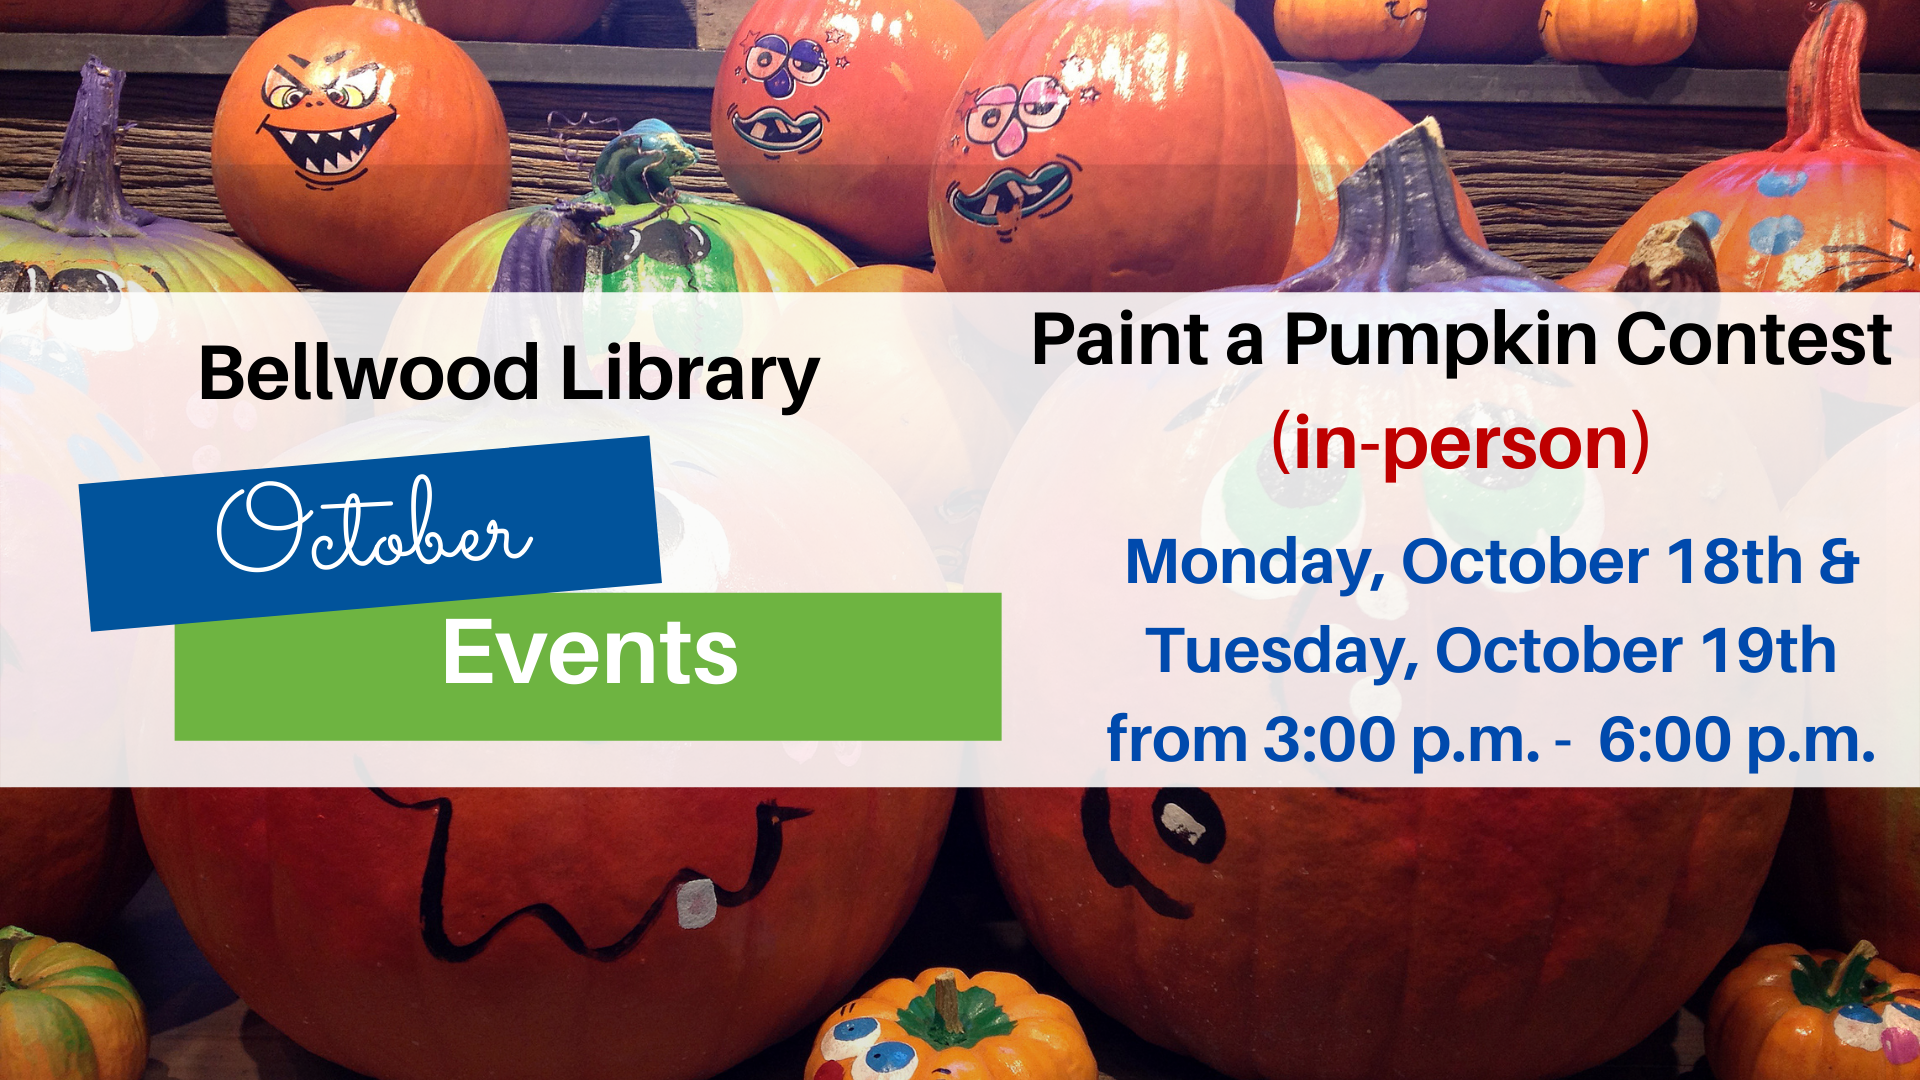 Paint a Pumpkin Contest (in-person)